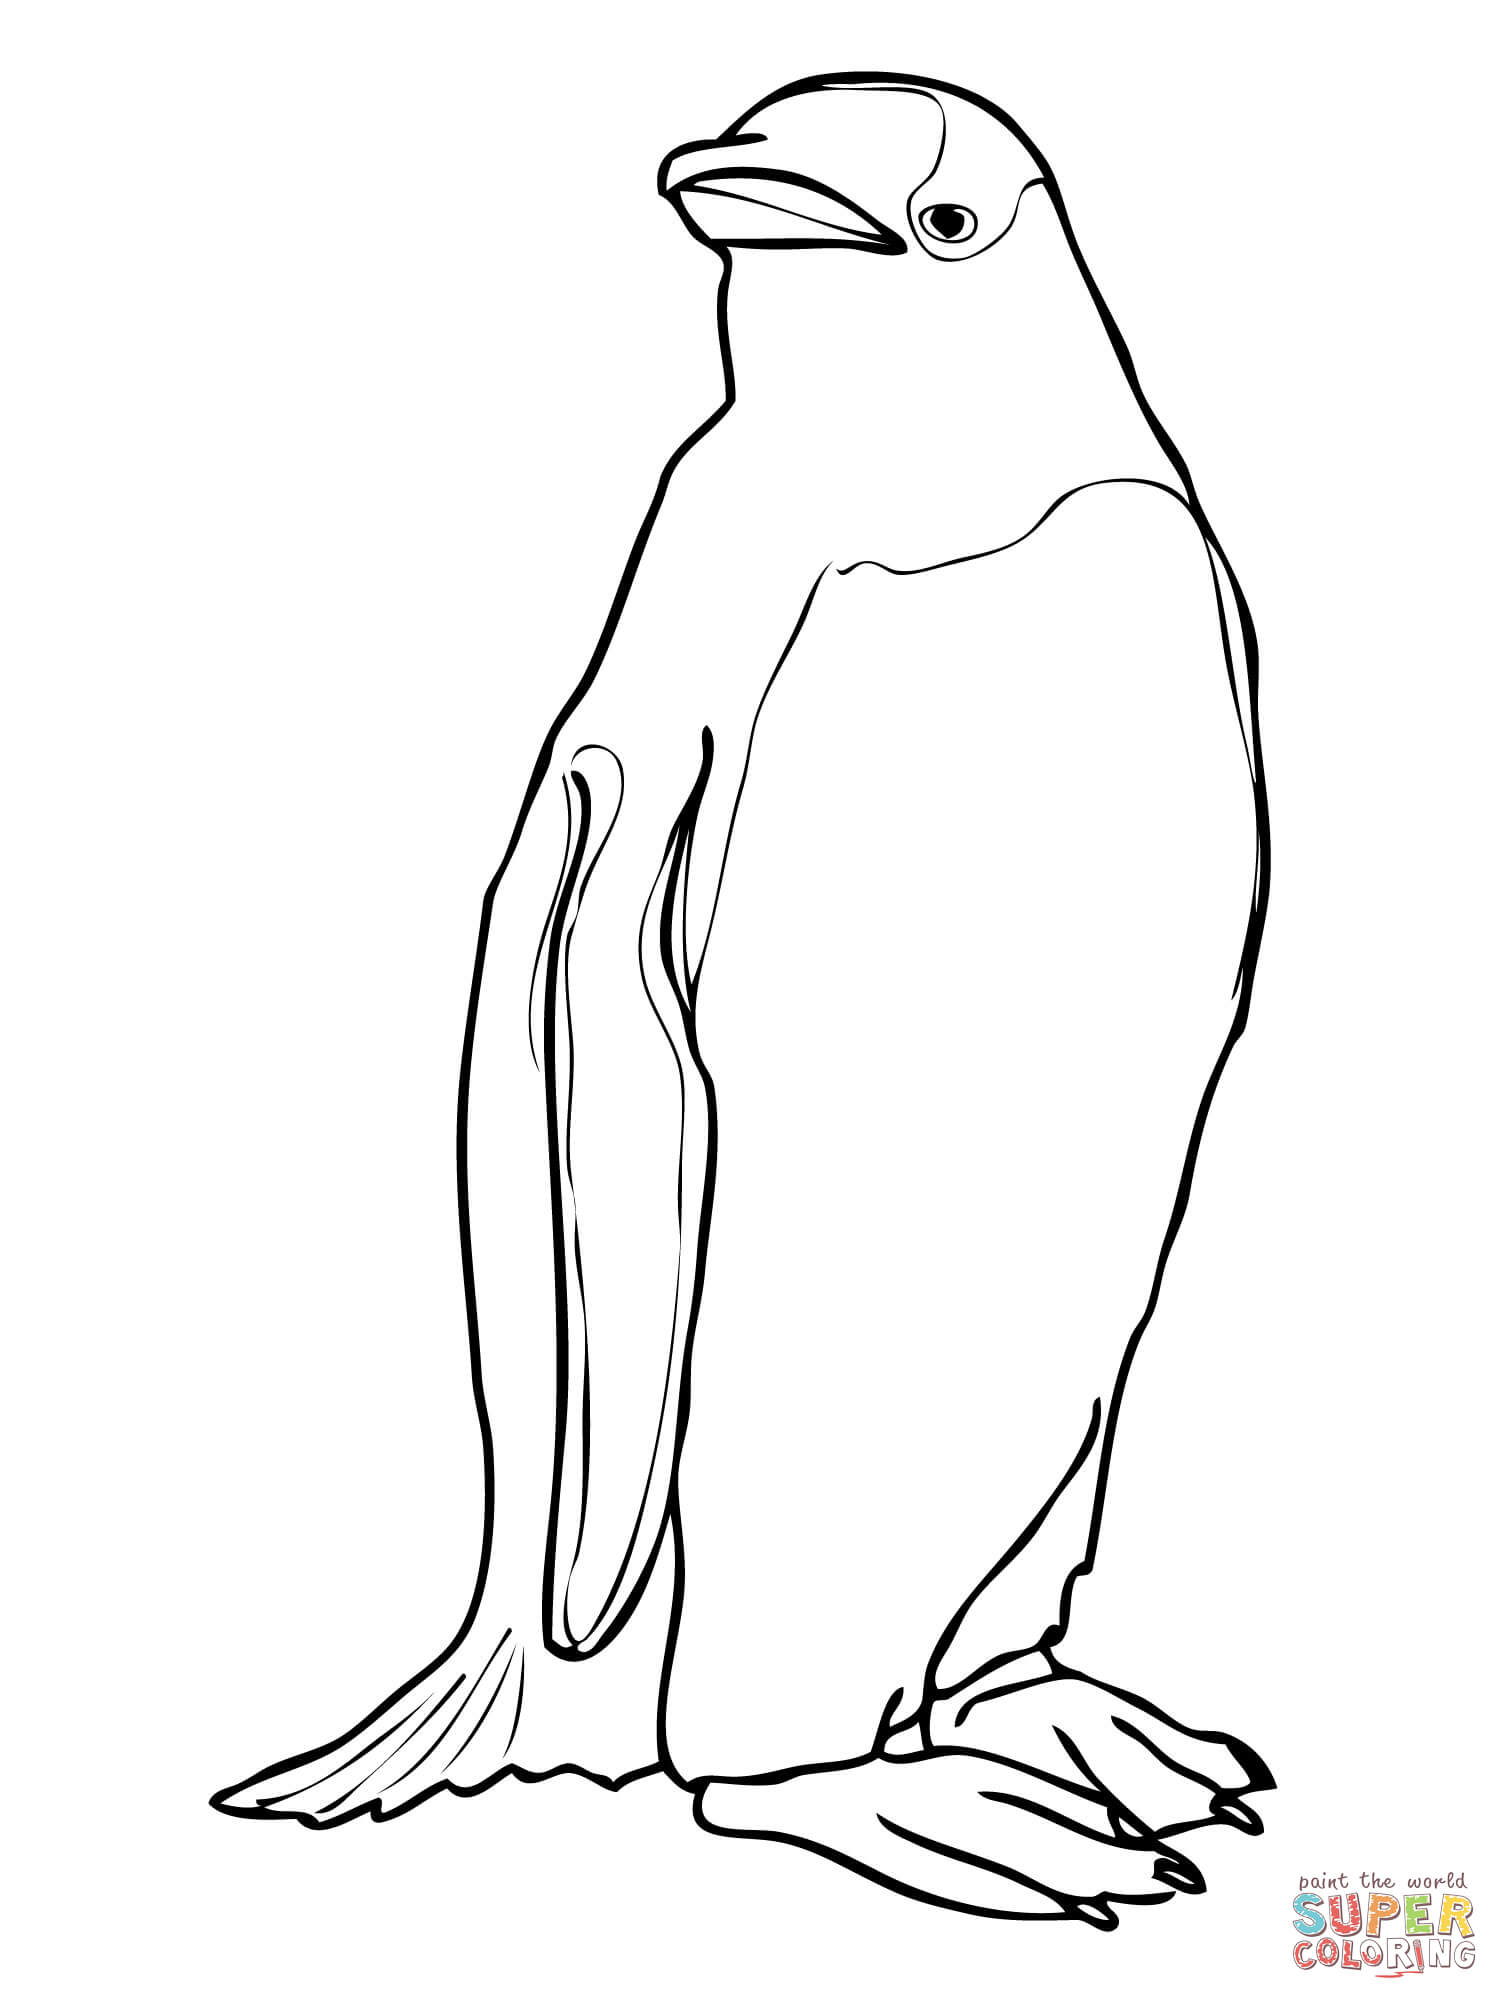 Pittsburgh penguins coloring pages printable - Gentoo Penguin Coloring Page Free Printable Coloring Pages